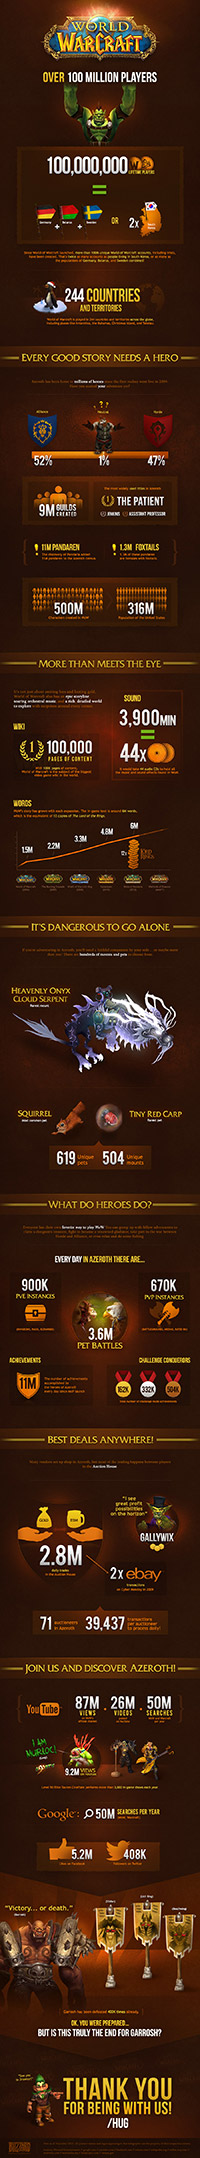 Blizzard-Infographic-Warcraft_thumb